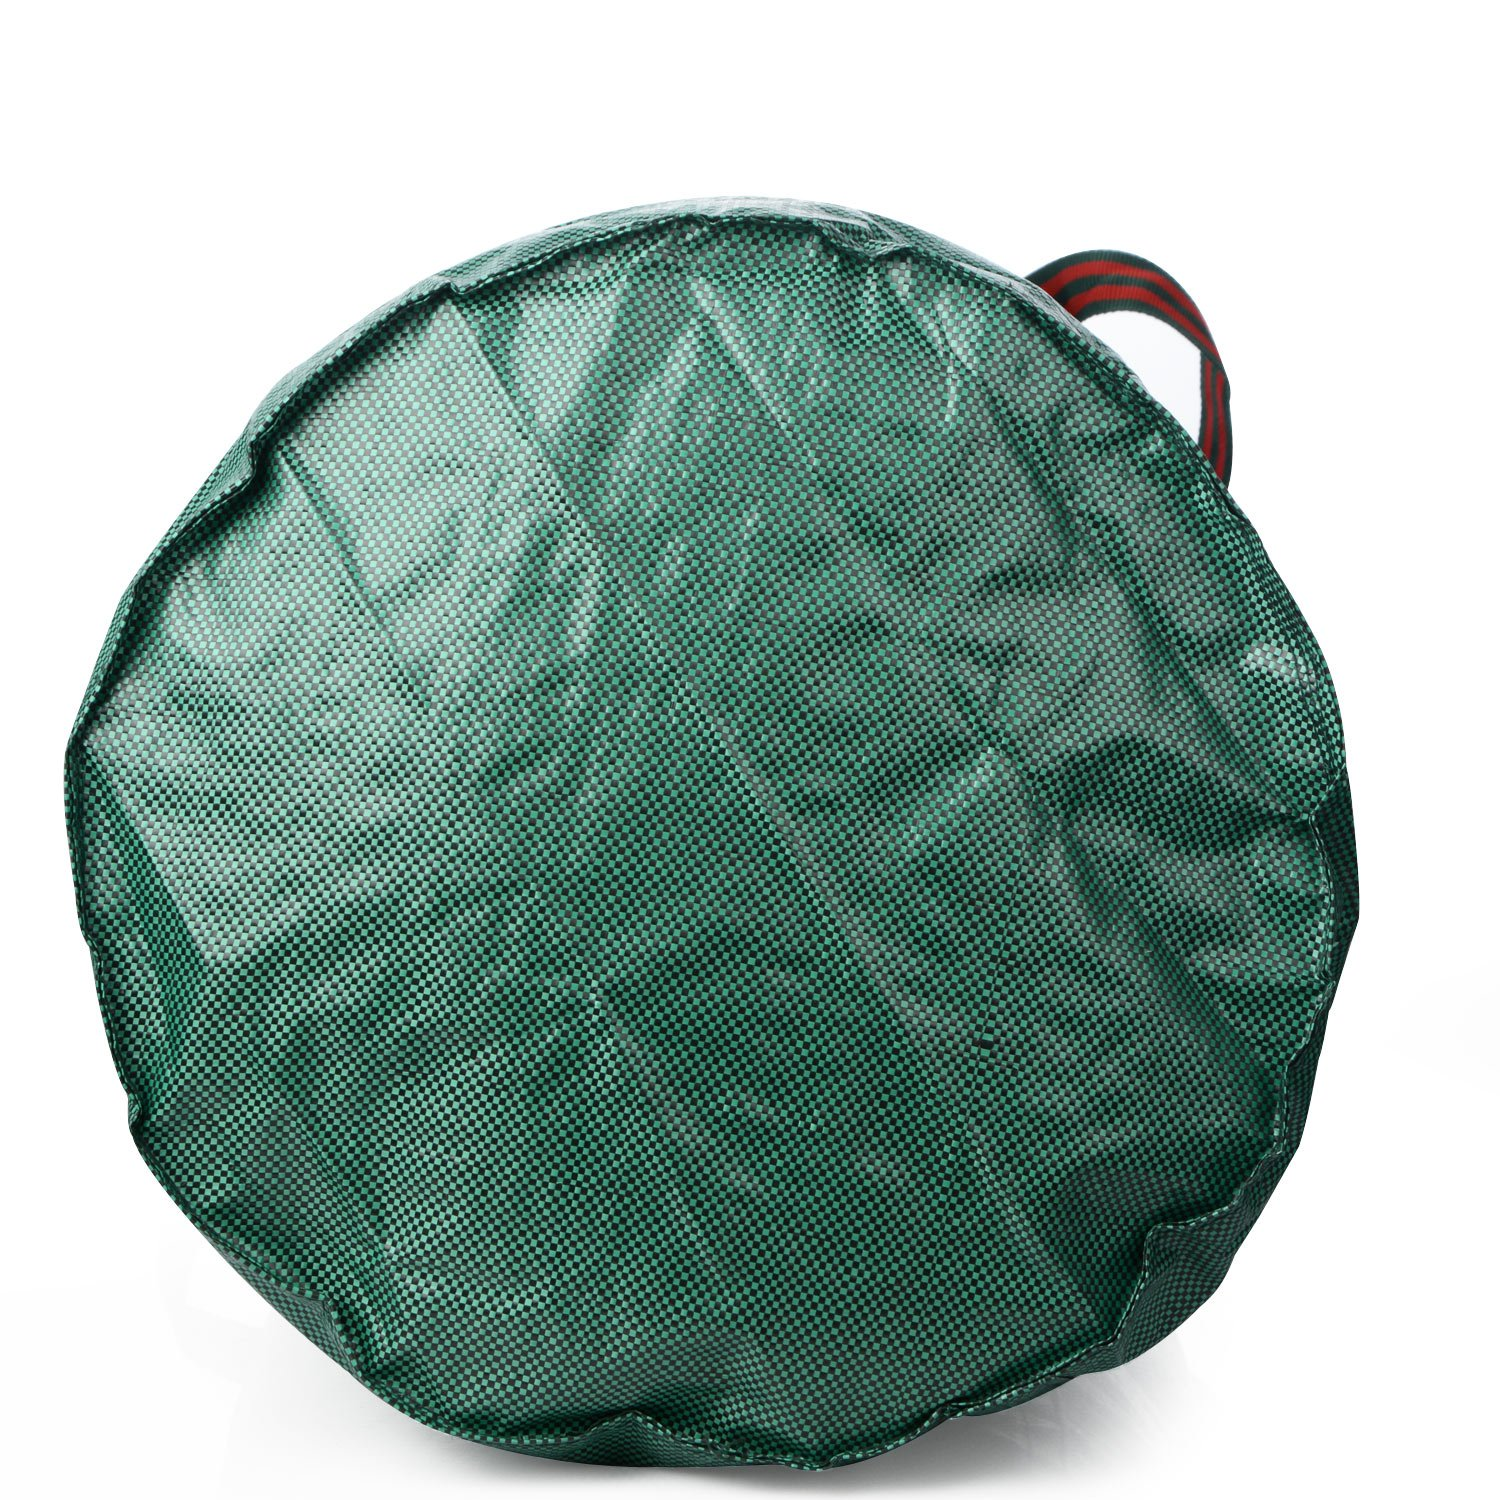 Reusable Garden Bag Heavy Duty Collapsible Lawn Pool Leaf Gardening Bags Pannow 2-Pack 32 Gallons Yard Waste Bags